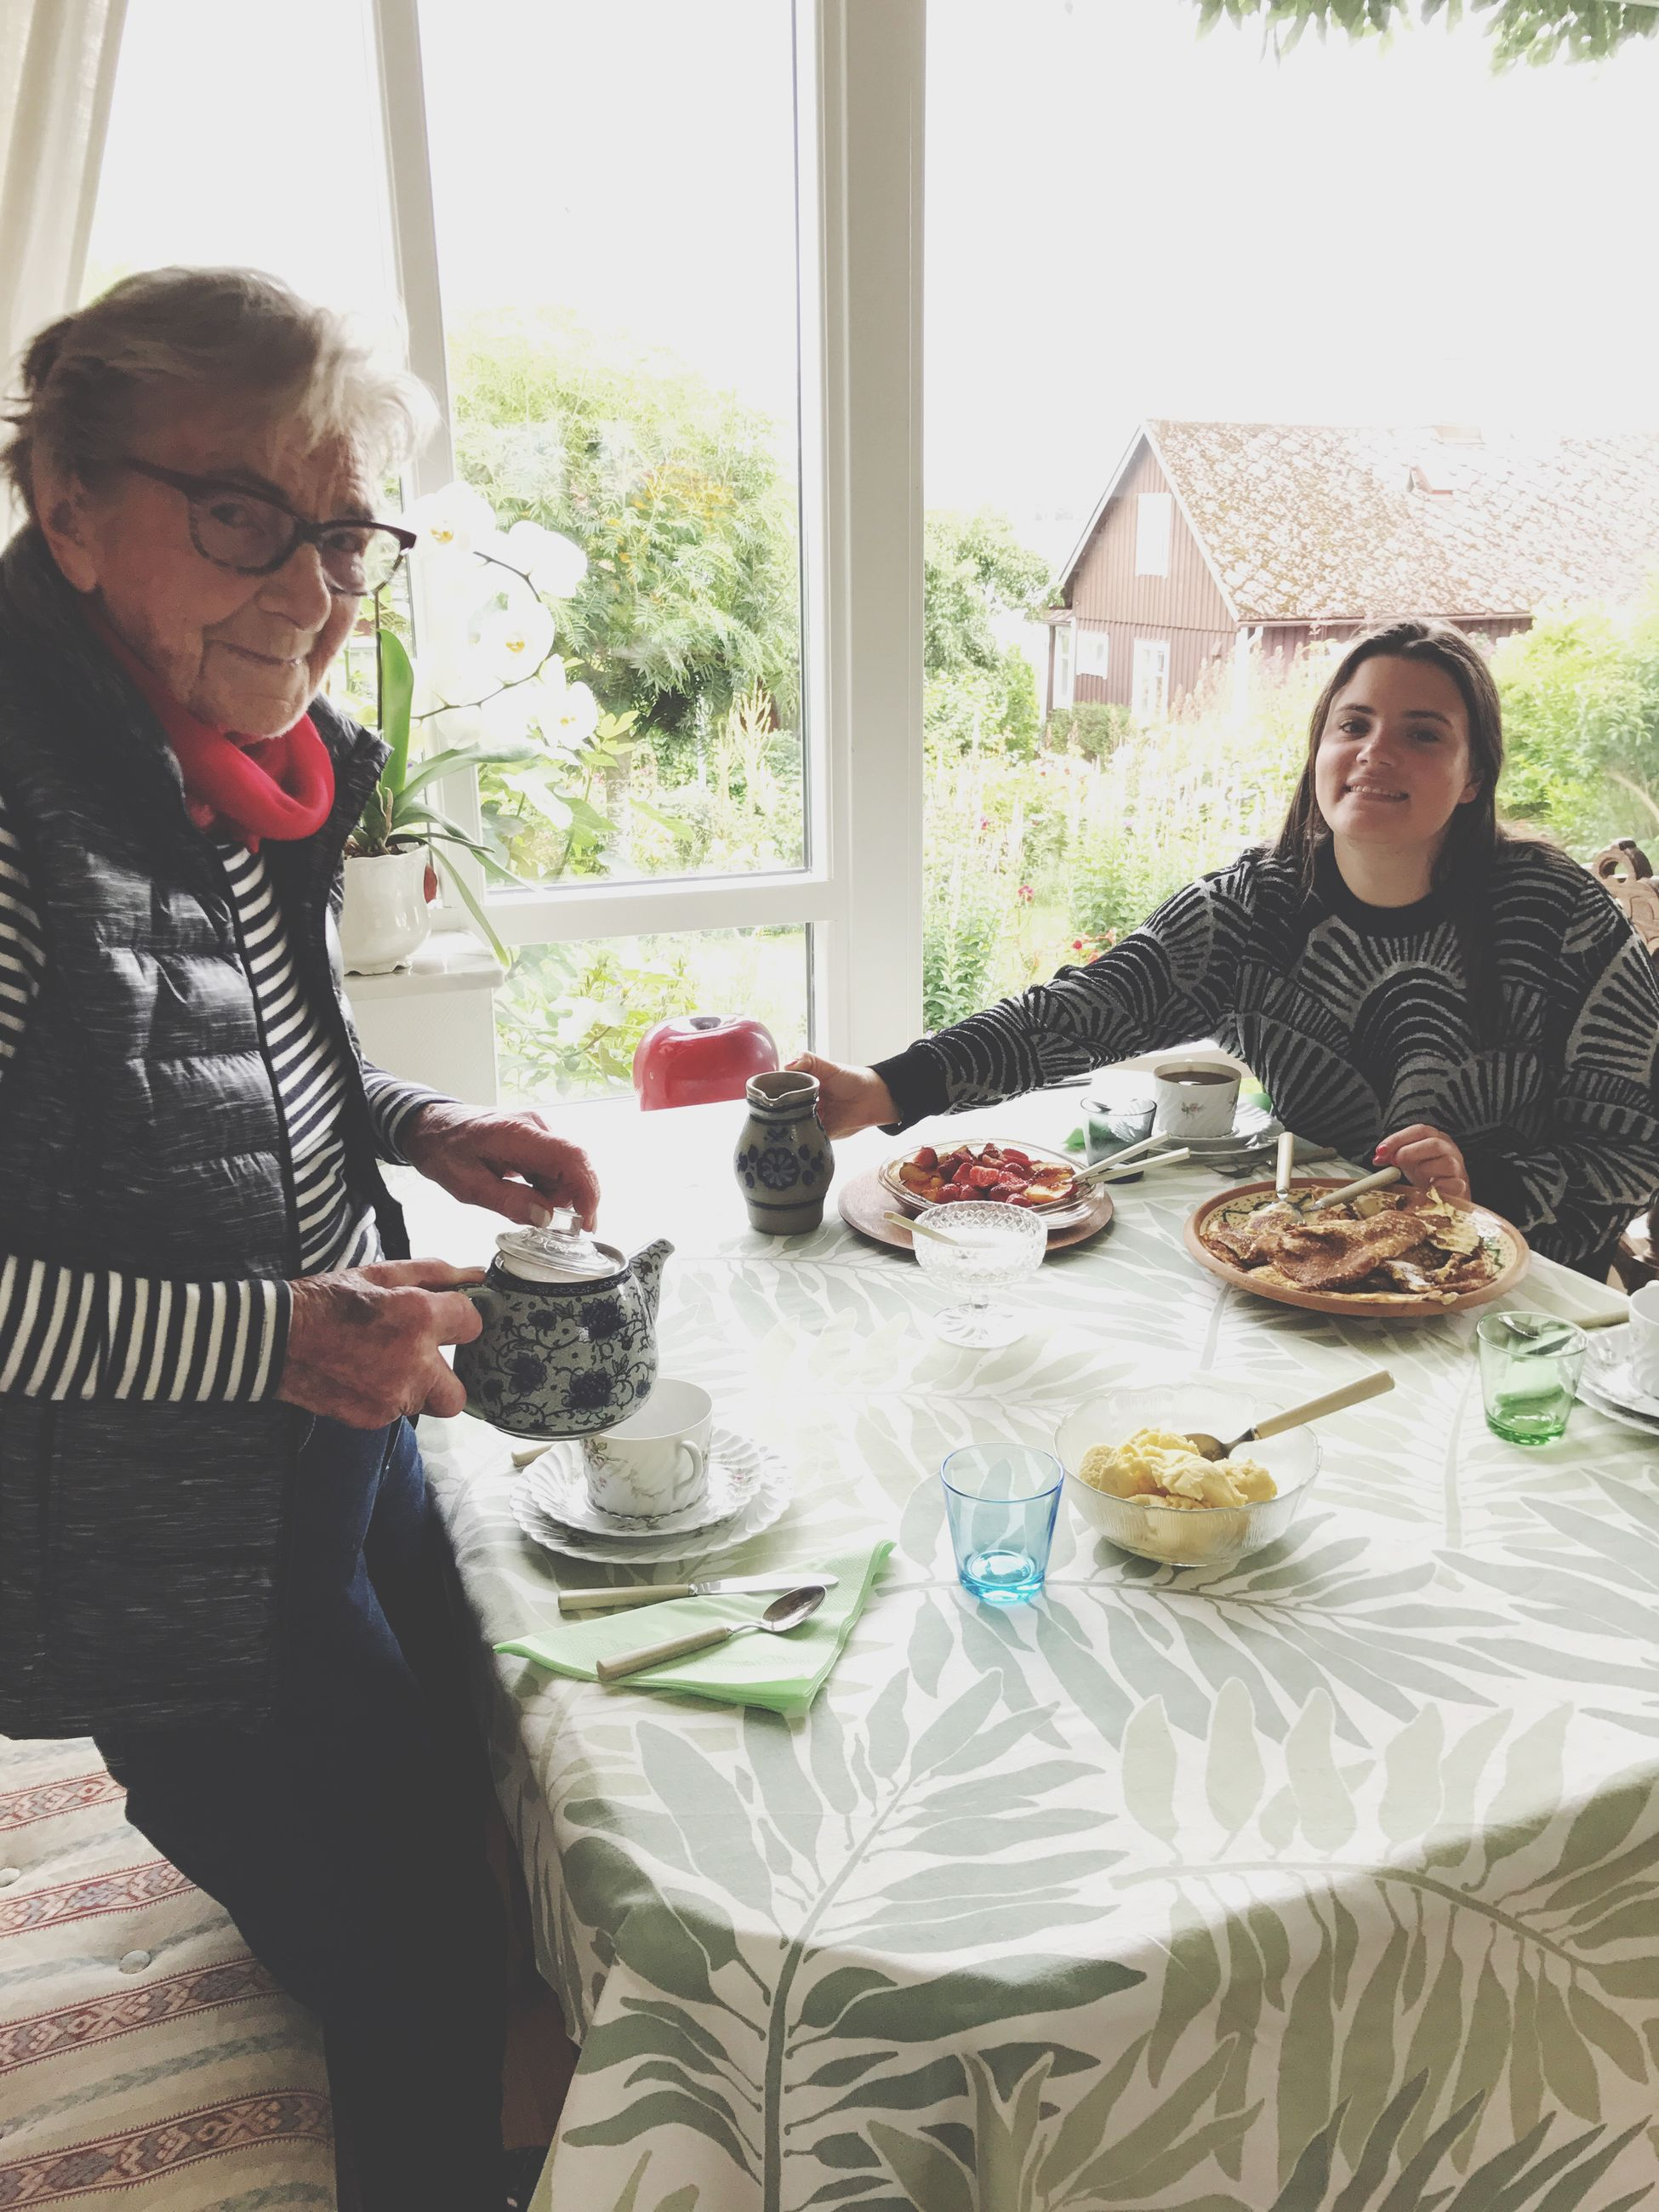 table, two people, food and drink, senior women, window, sitting, senior adult, home interior, togetherness, indoors, lifestyles, food, eyeglasses, casual clothing, real people, day, drink, plate, domestic life, friendship